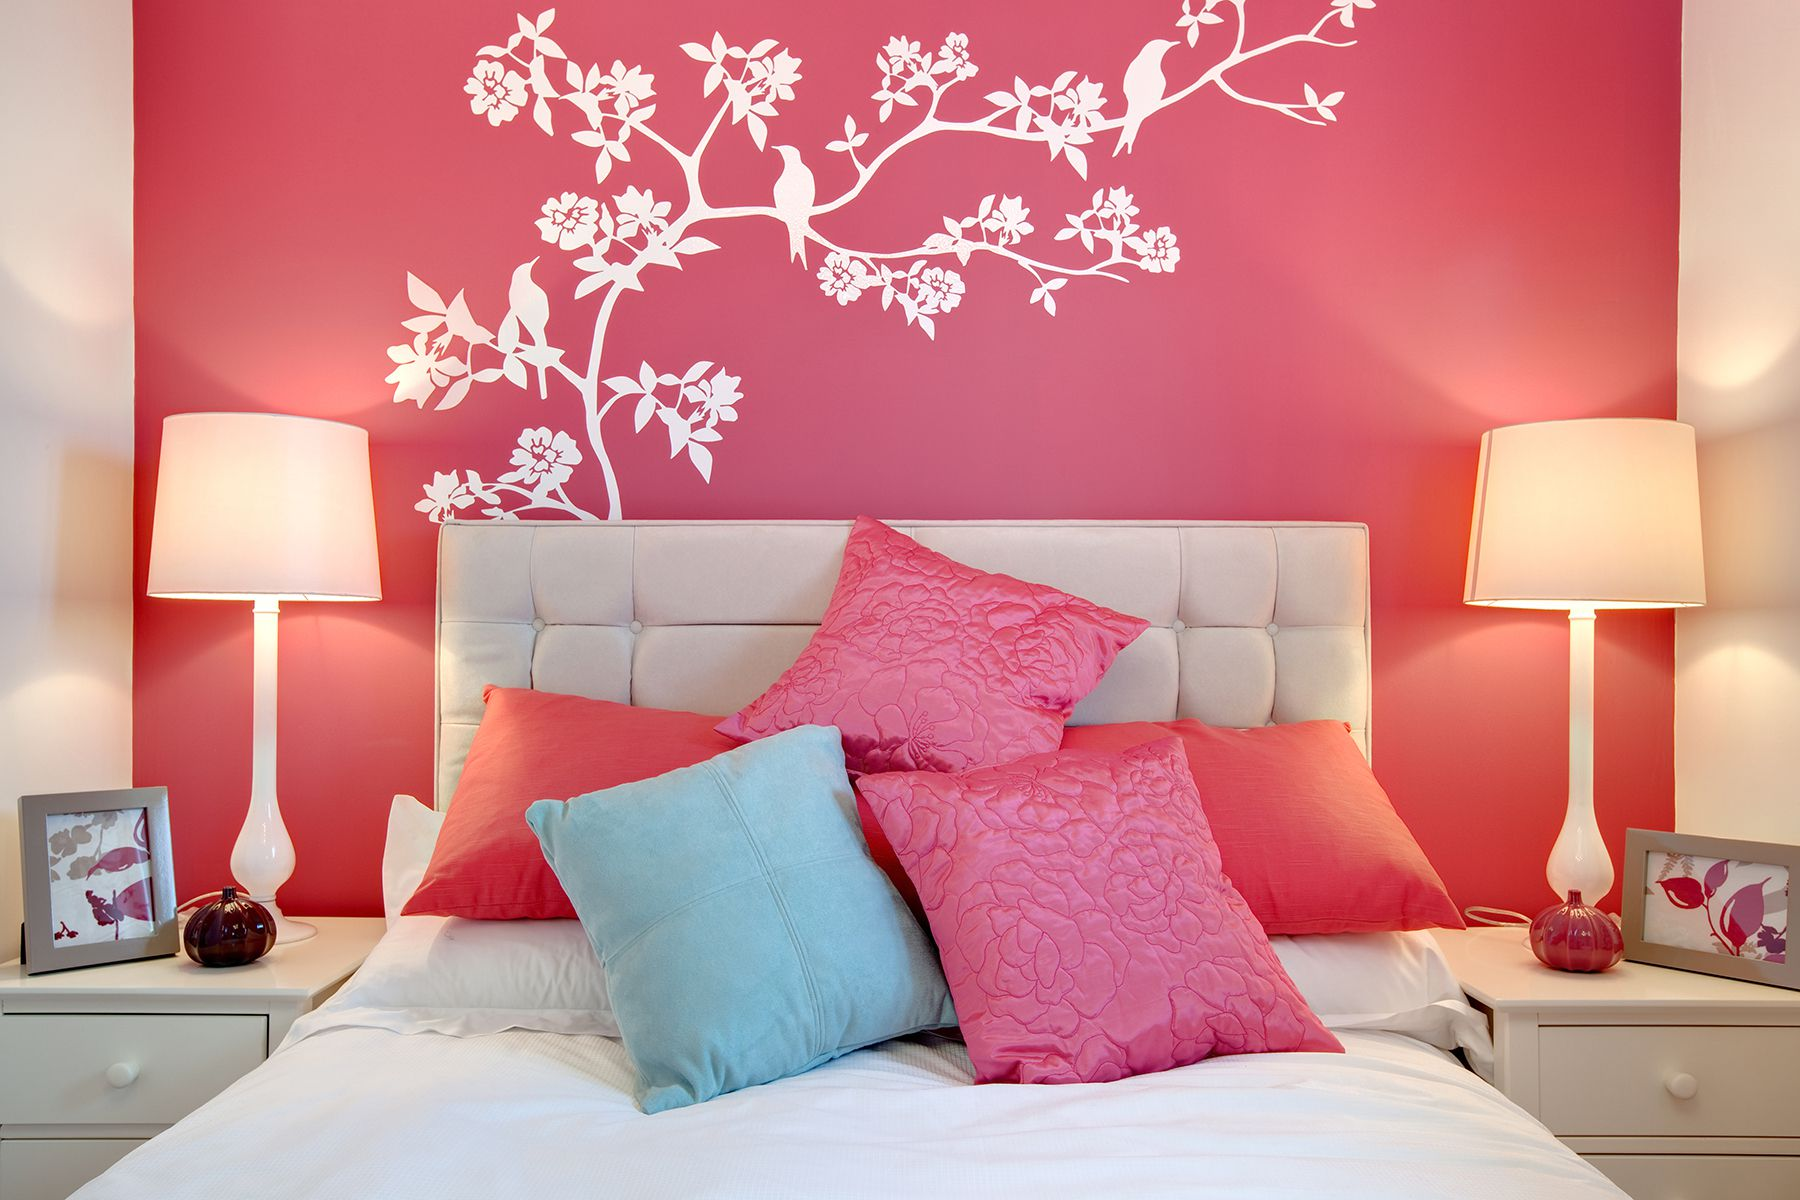 Marvelous Design Of The Bedroom Aras With Pink Wall Added With Paint On The Wall Ideas With Two Table Lamp Ideas